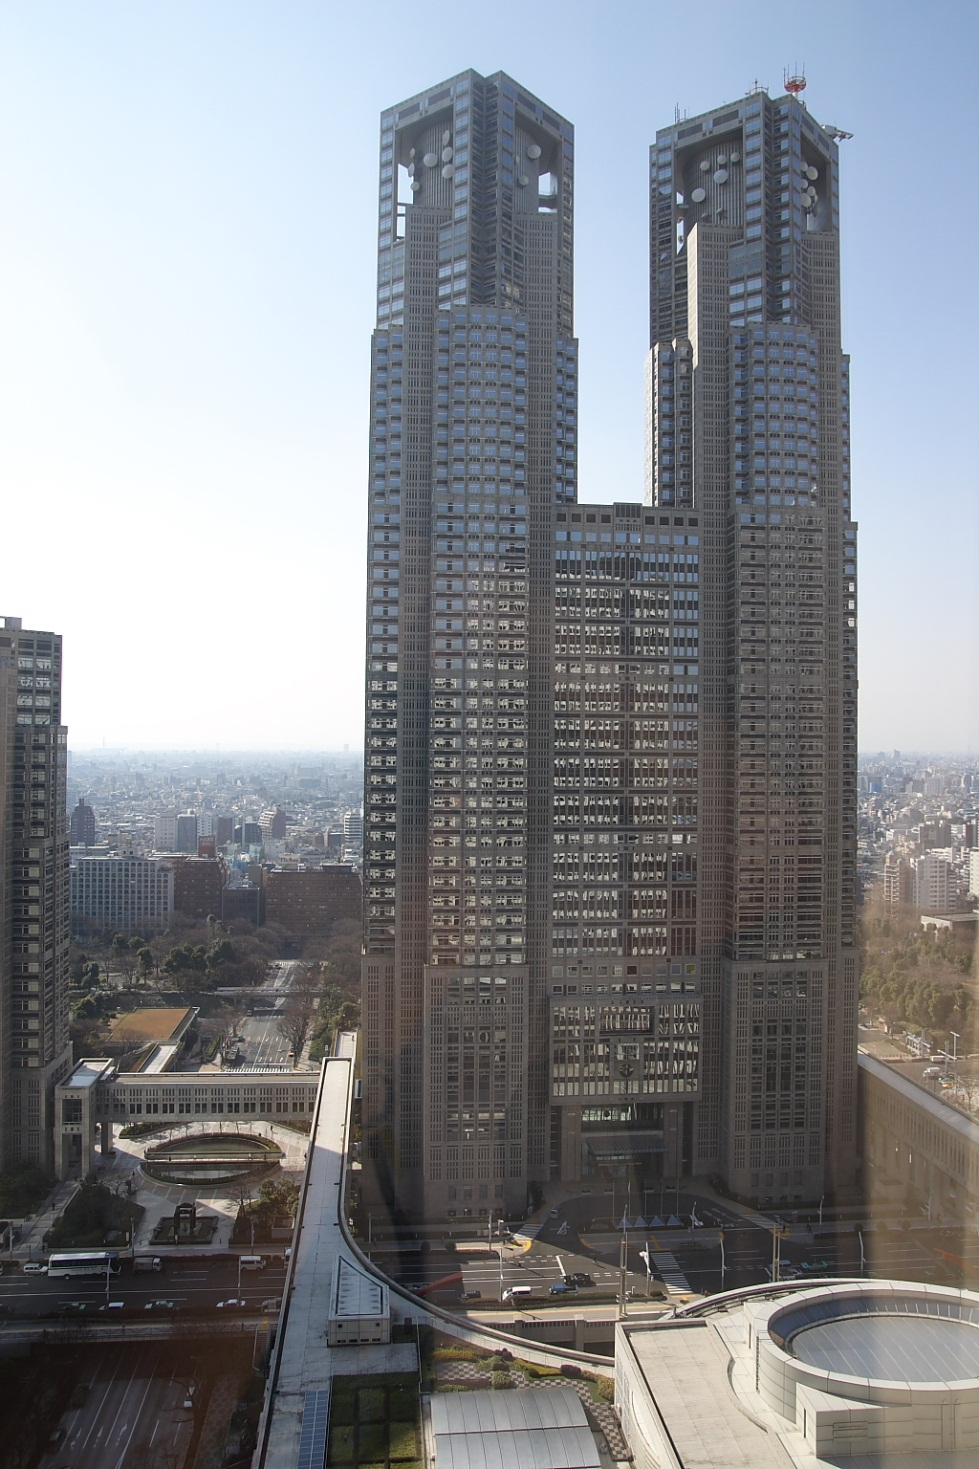 http://upload.wikimedia.org/wikipedia/commons/7/78/Shinjuku_Park_Tower_7_Desember_2003_cropped.jpg